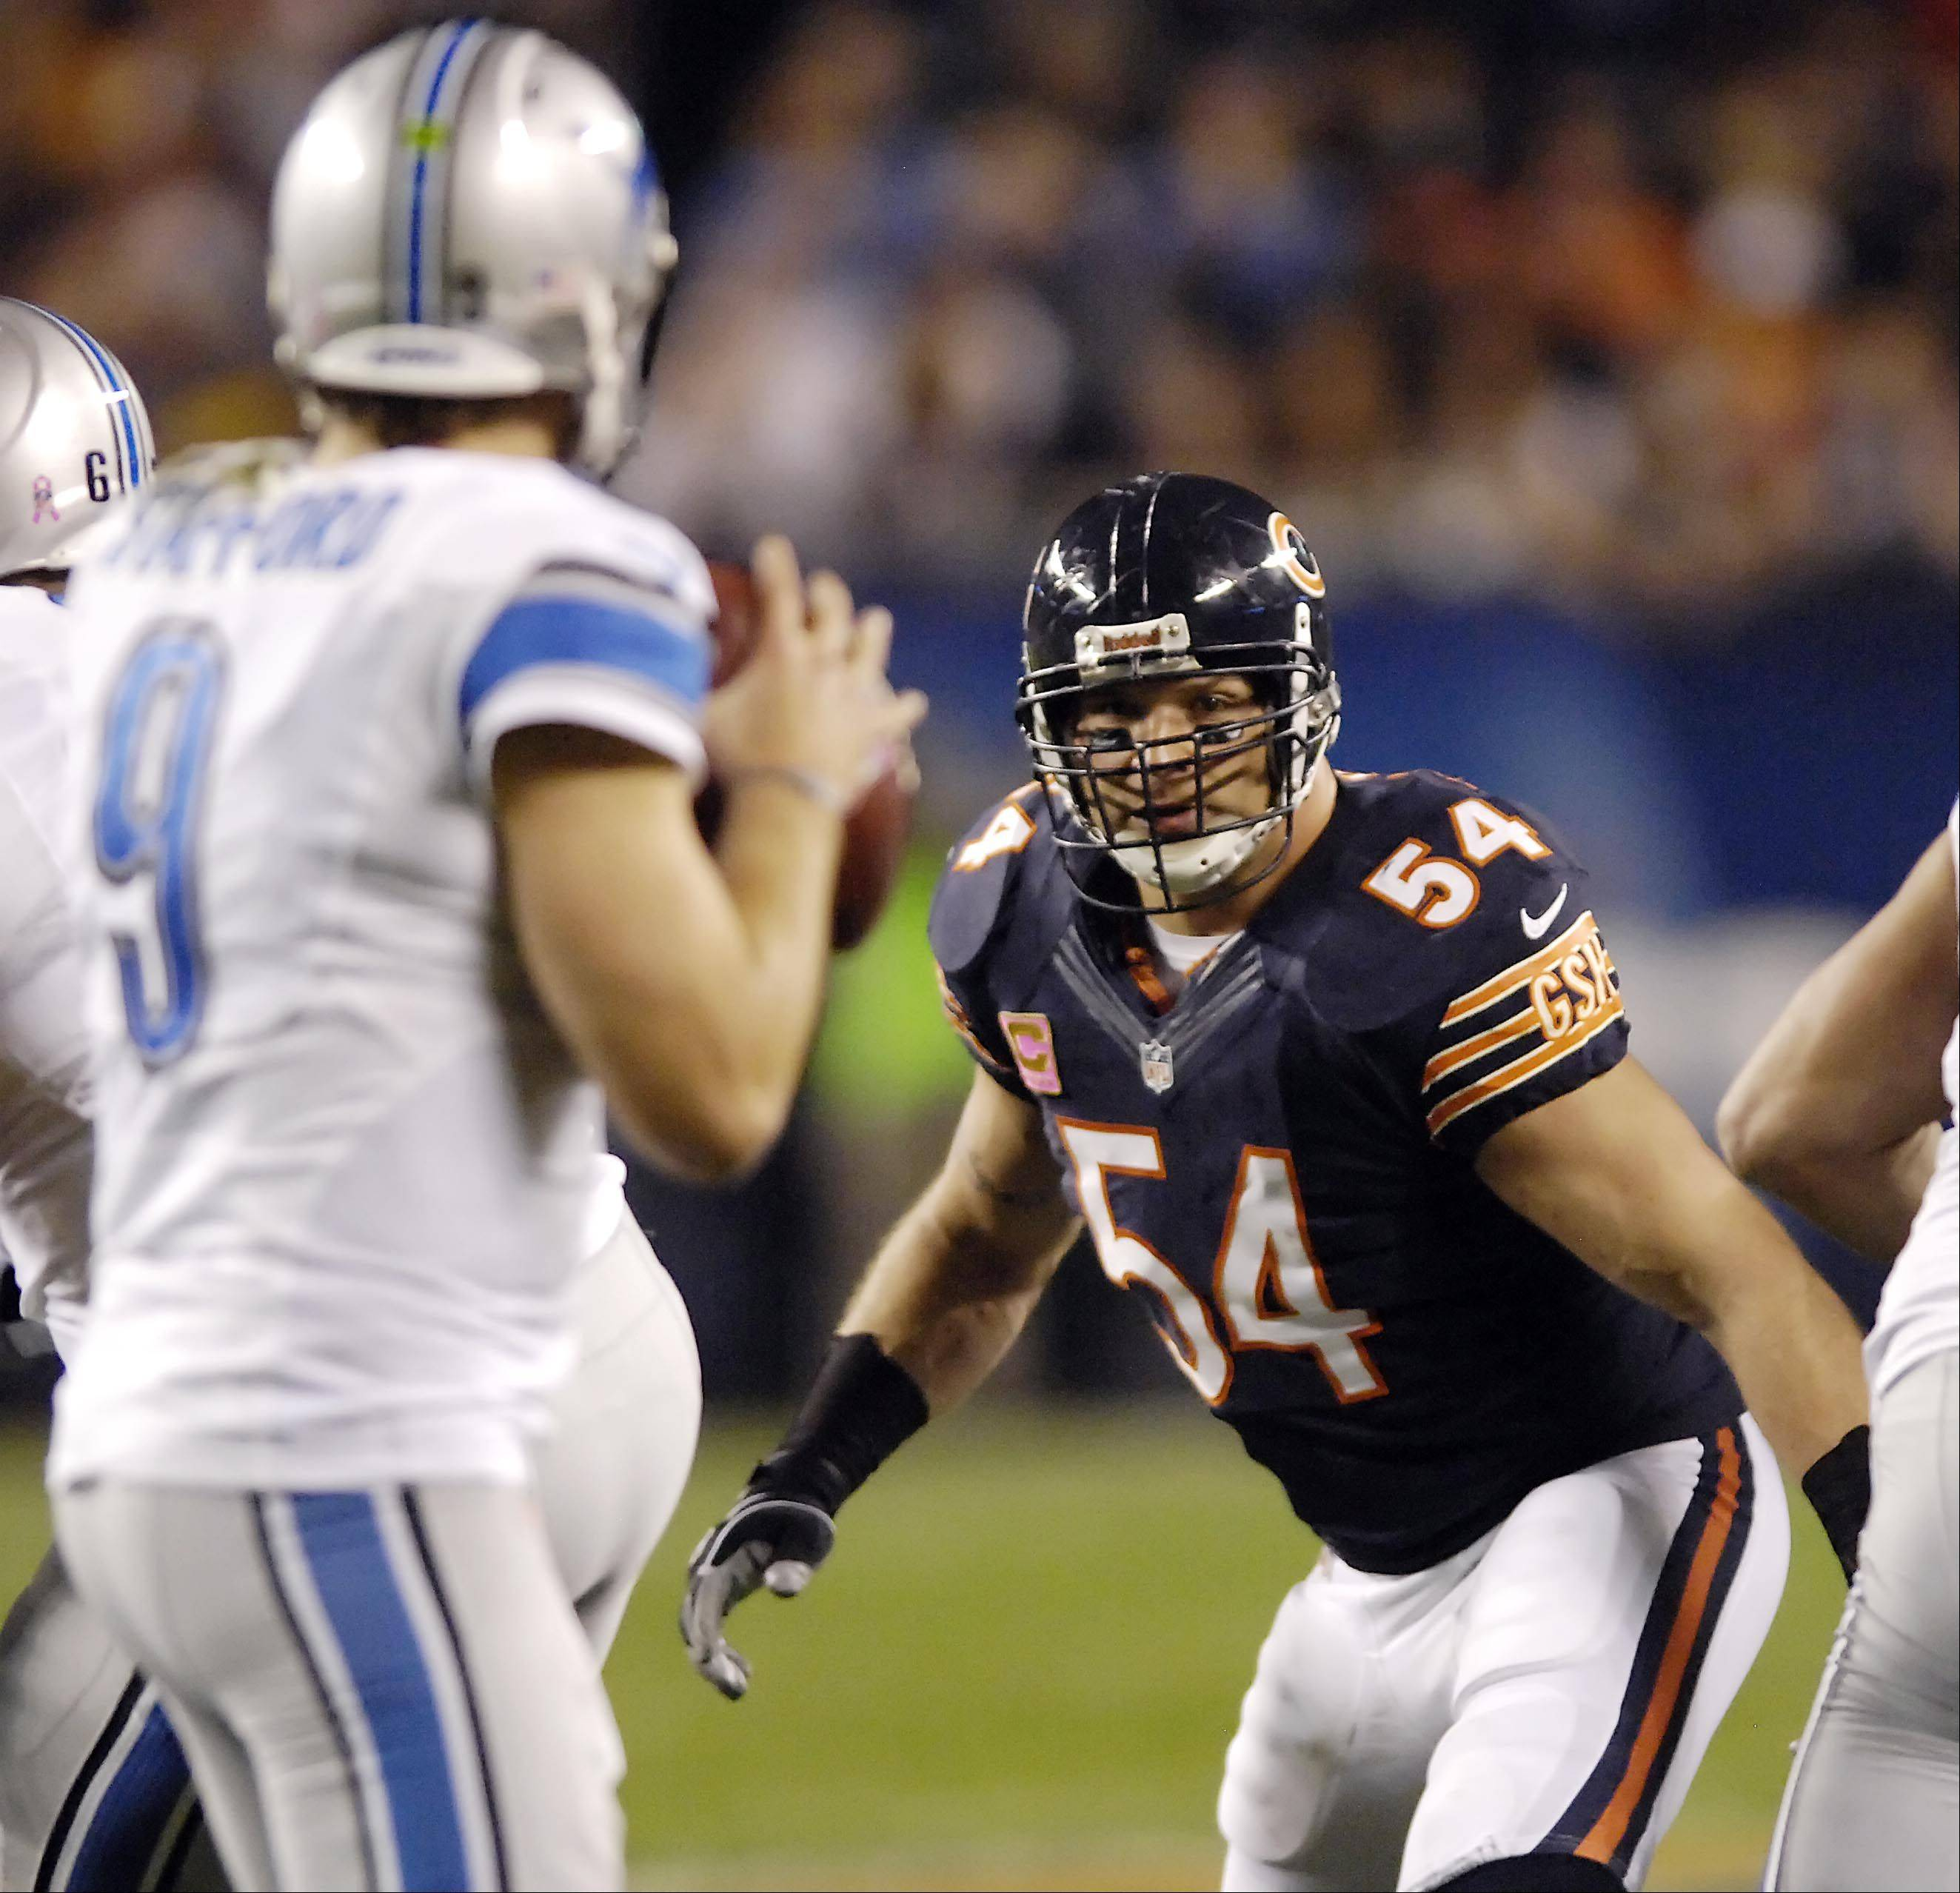 Chicago Bears middle linebacker Brian Urlacher is playing like he did when he was much younger, says Mike North.